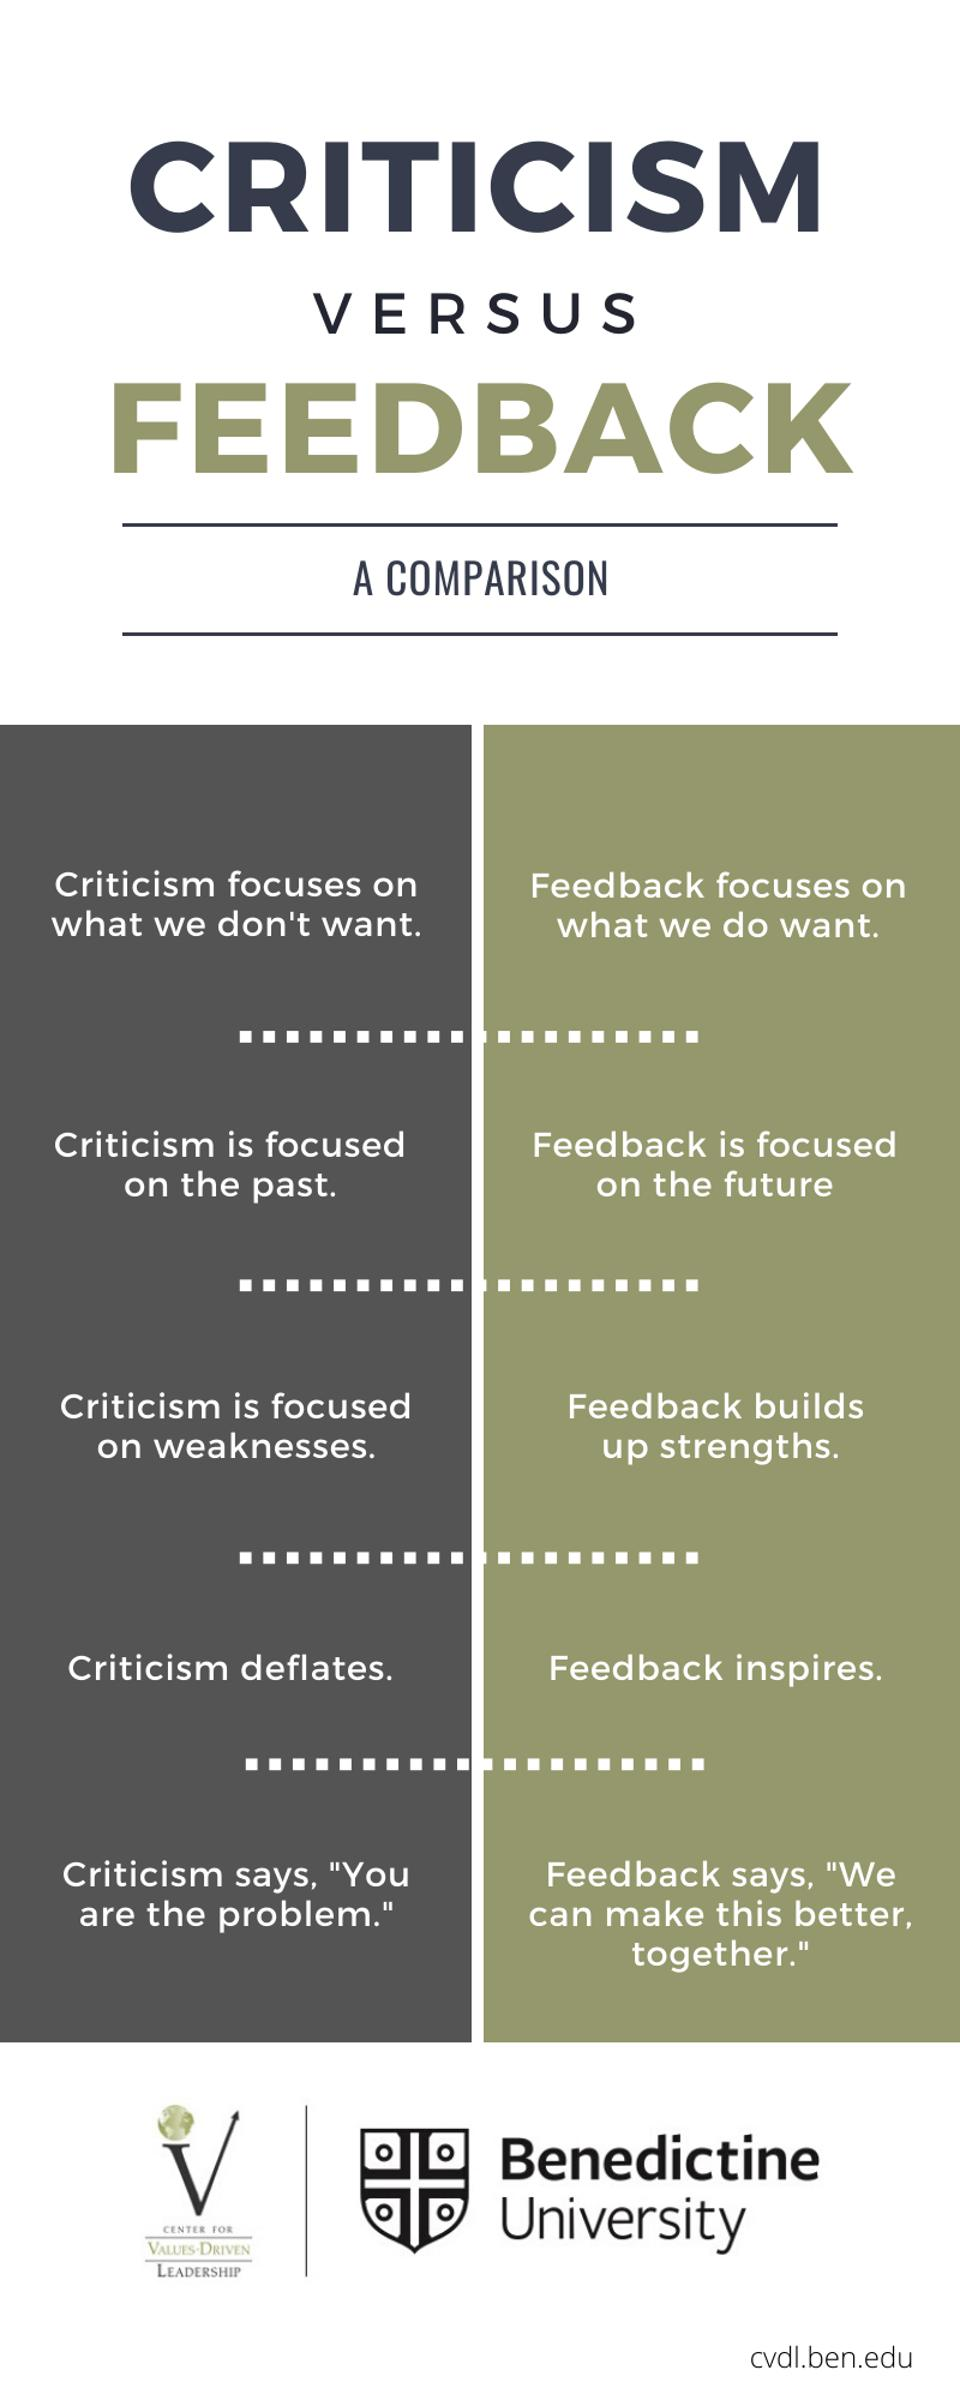 difference between feedback and criticism?